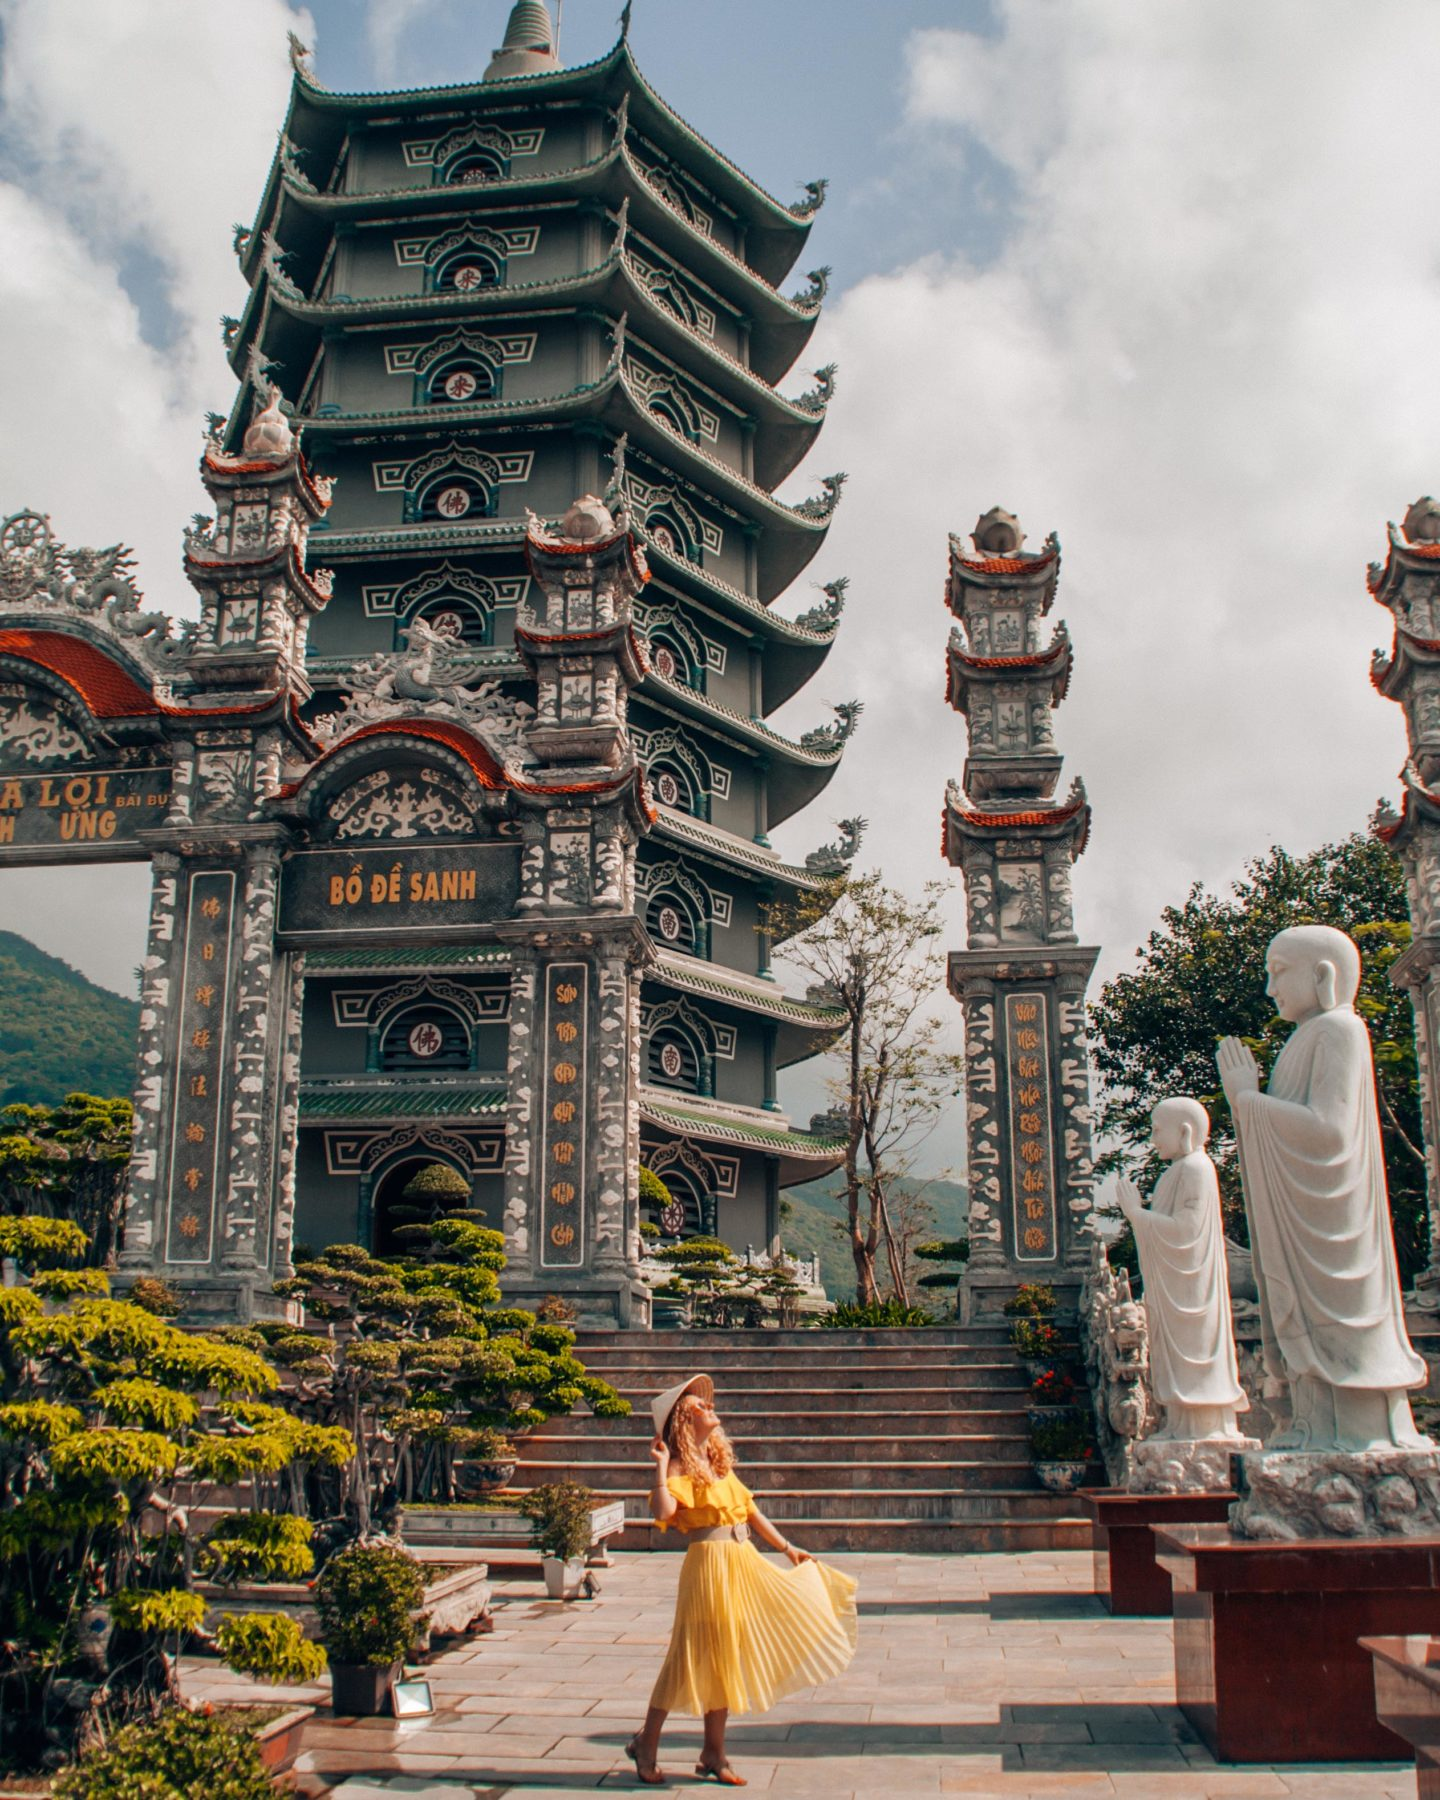 Visit Linh Ung Pagoda without crowds in Da Nang, Vietnam